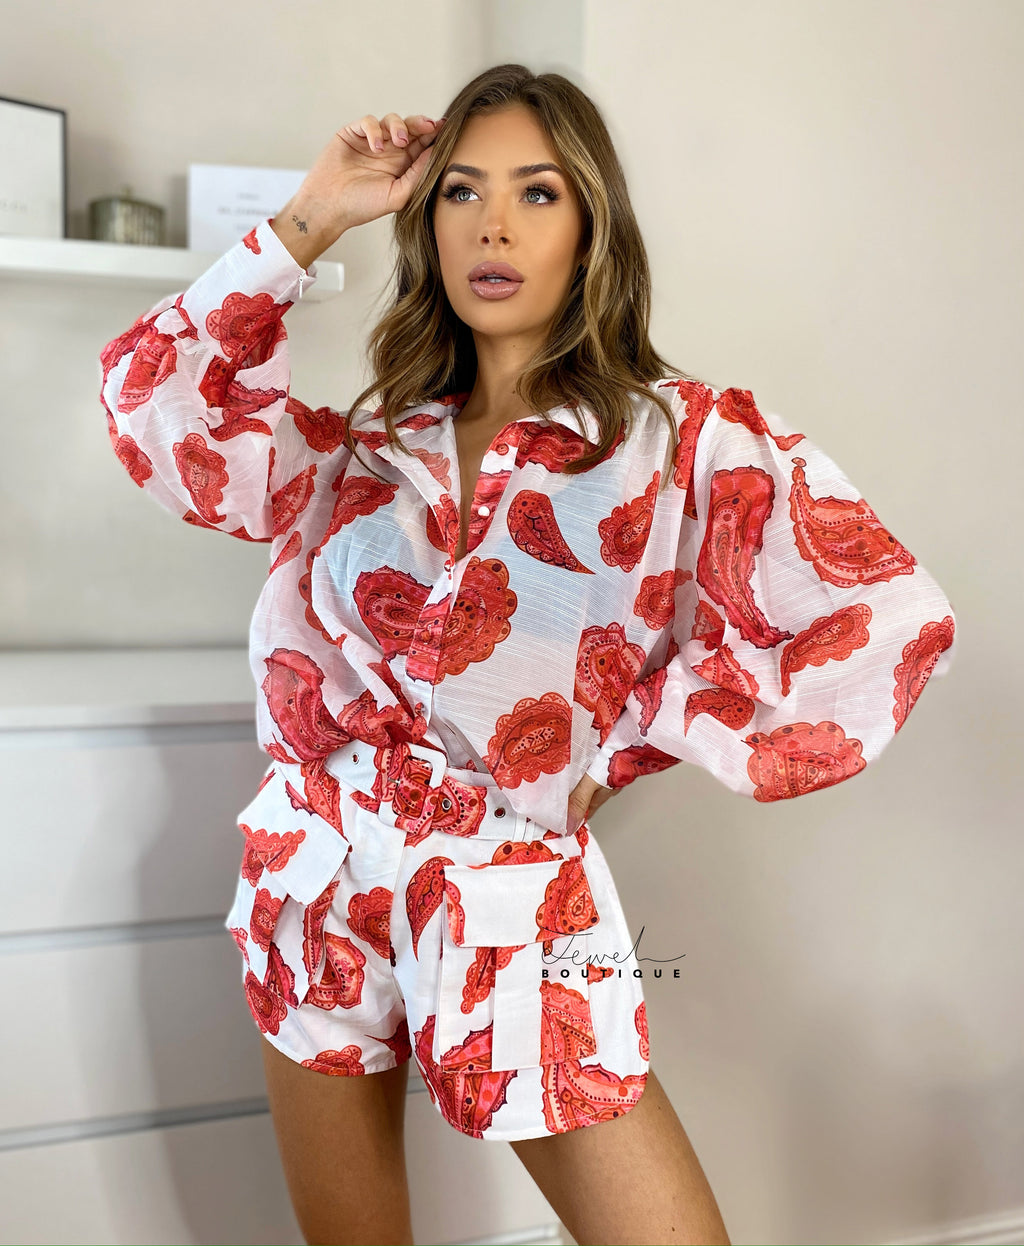 Red and white printed women's co-ord set with blouse and shorts